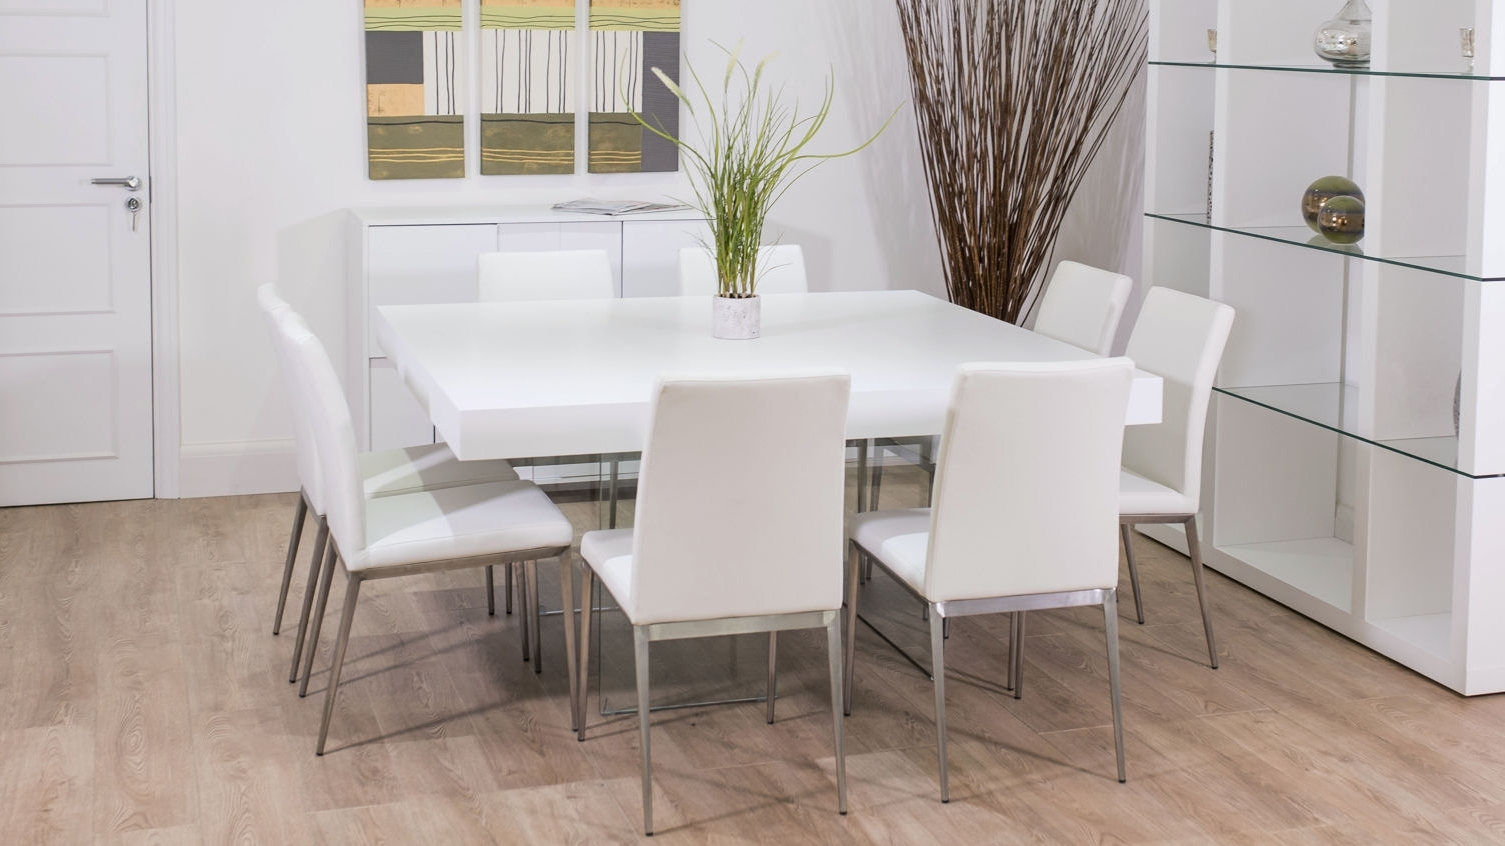 White Dining Tables 8 Seater Intended For Preferred Smartly Seat Square Then Ideas Square Table Together With Opulent (View 11 of 25)